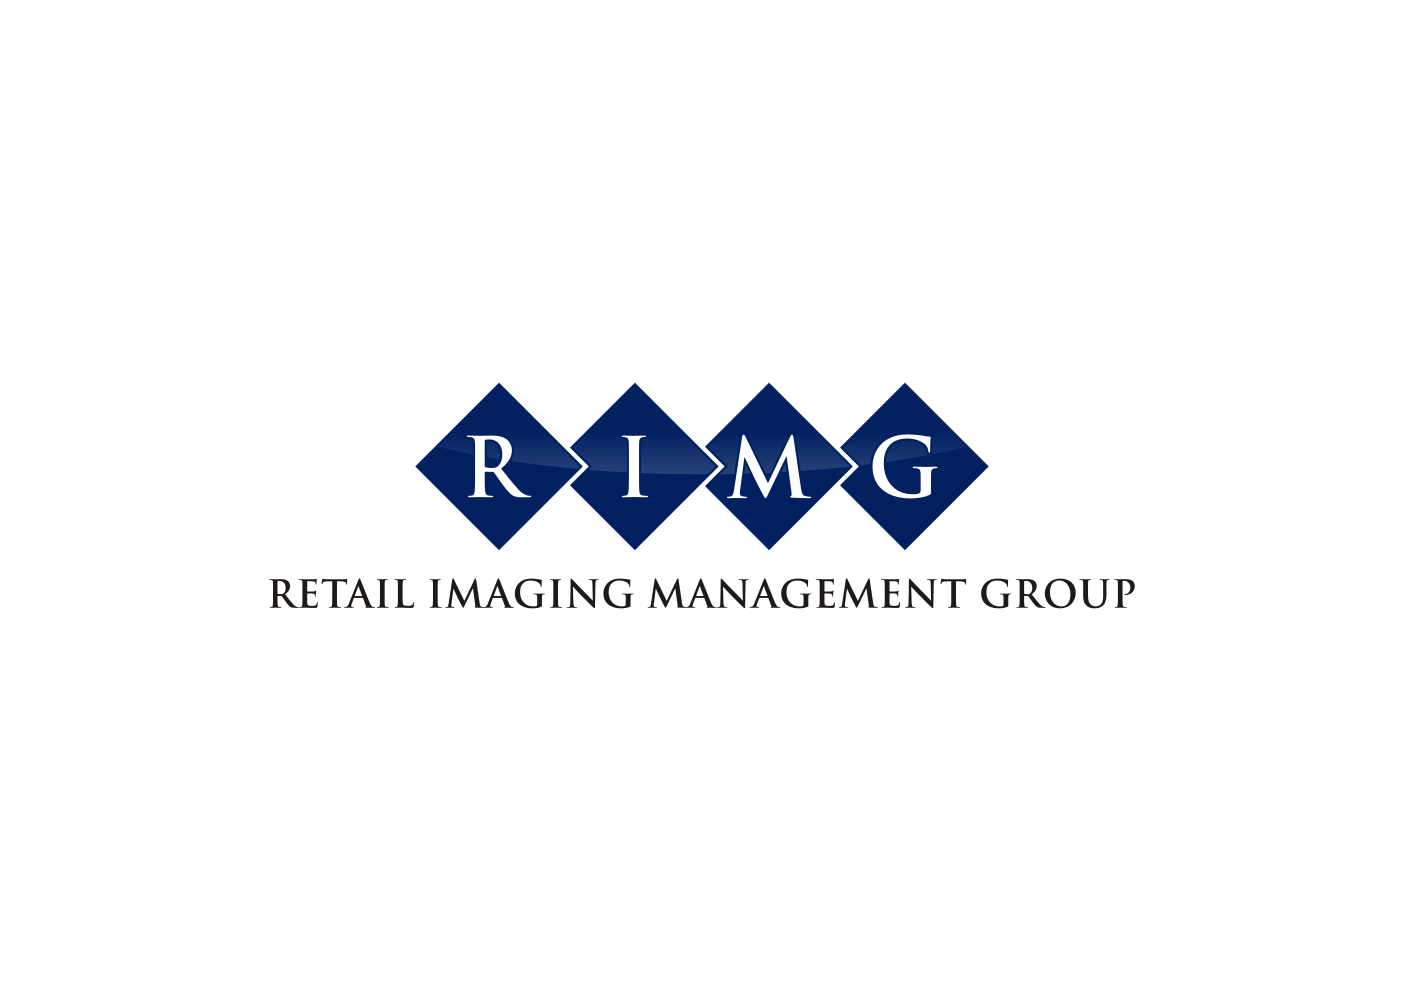 Logo Design by Ekarini Puspitasari - Entry No. 10 in the Logo Design Contest Creative Logo Design for Retail Imaging Management Group (R.I.M.G.).